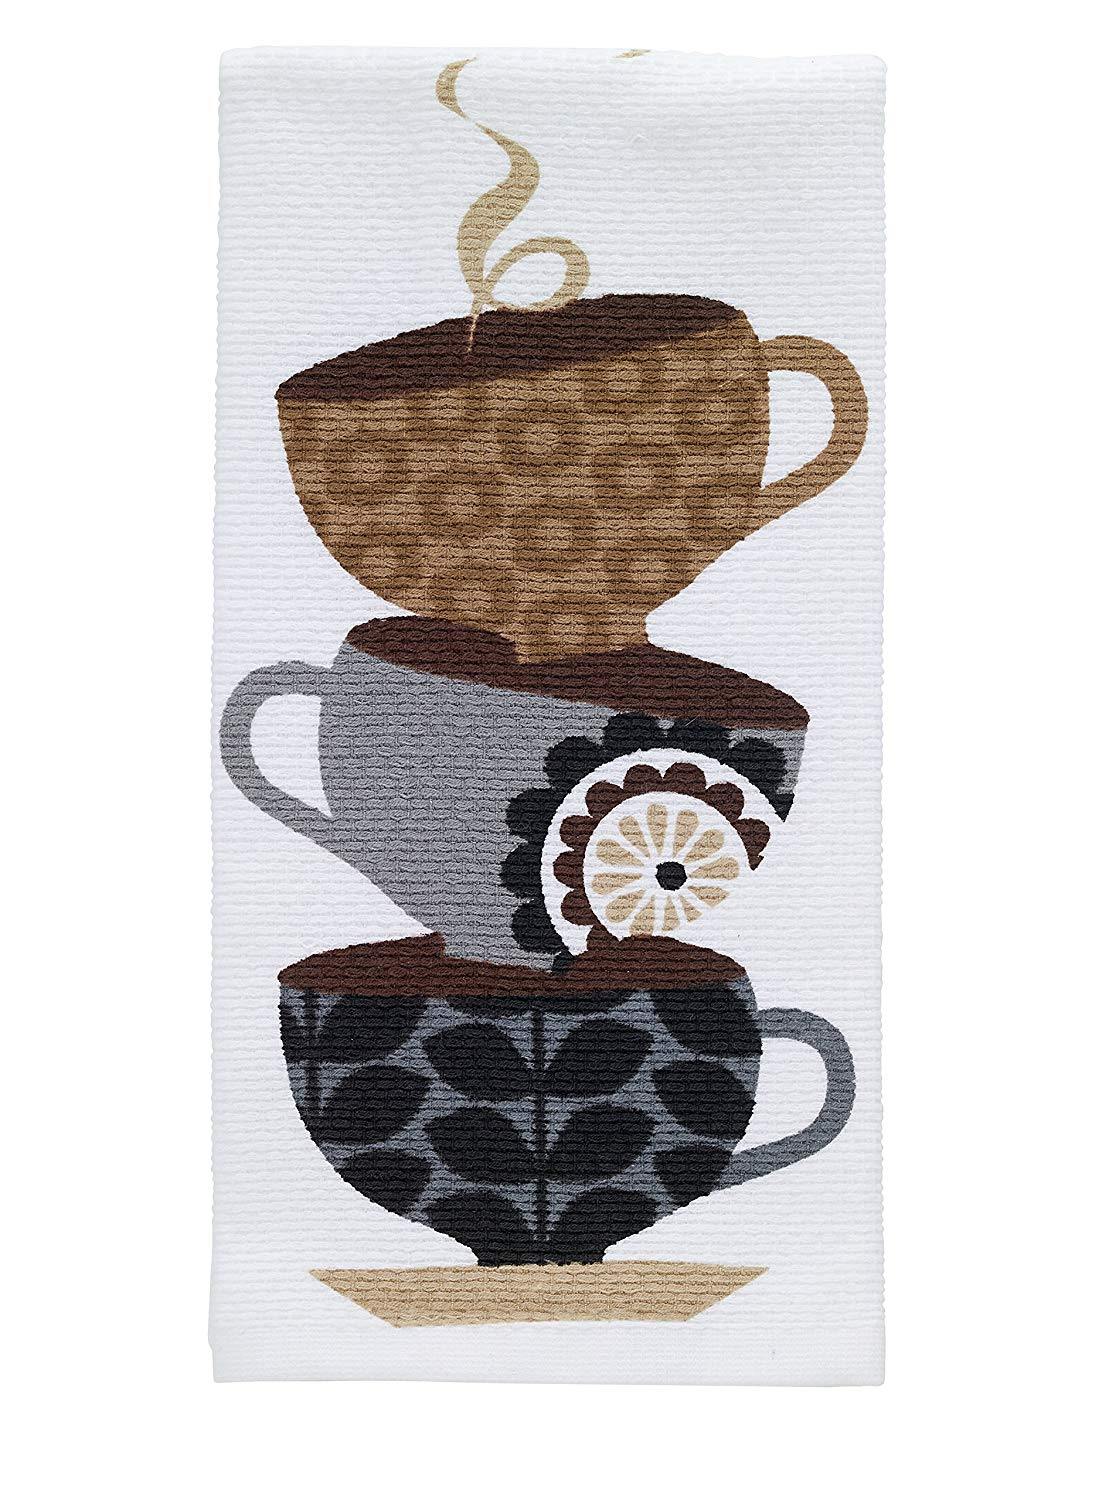 "T-fal Textiles Double Sided Print Woven Cotton Kitchen Dish Towel, 16"" x 26"", Coffee Cup Stack Print"